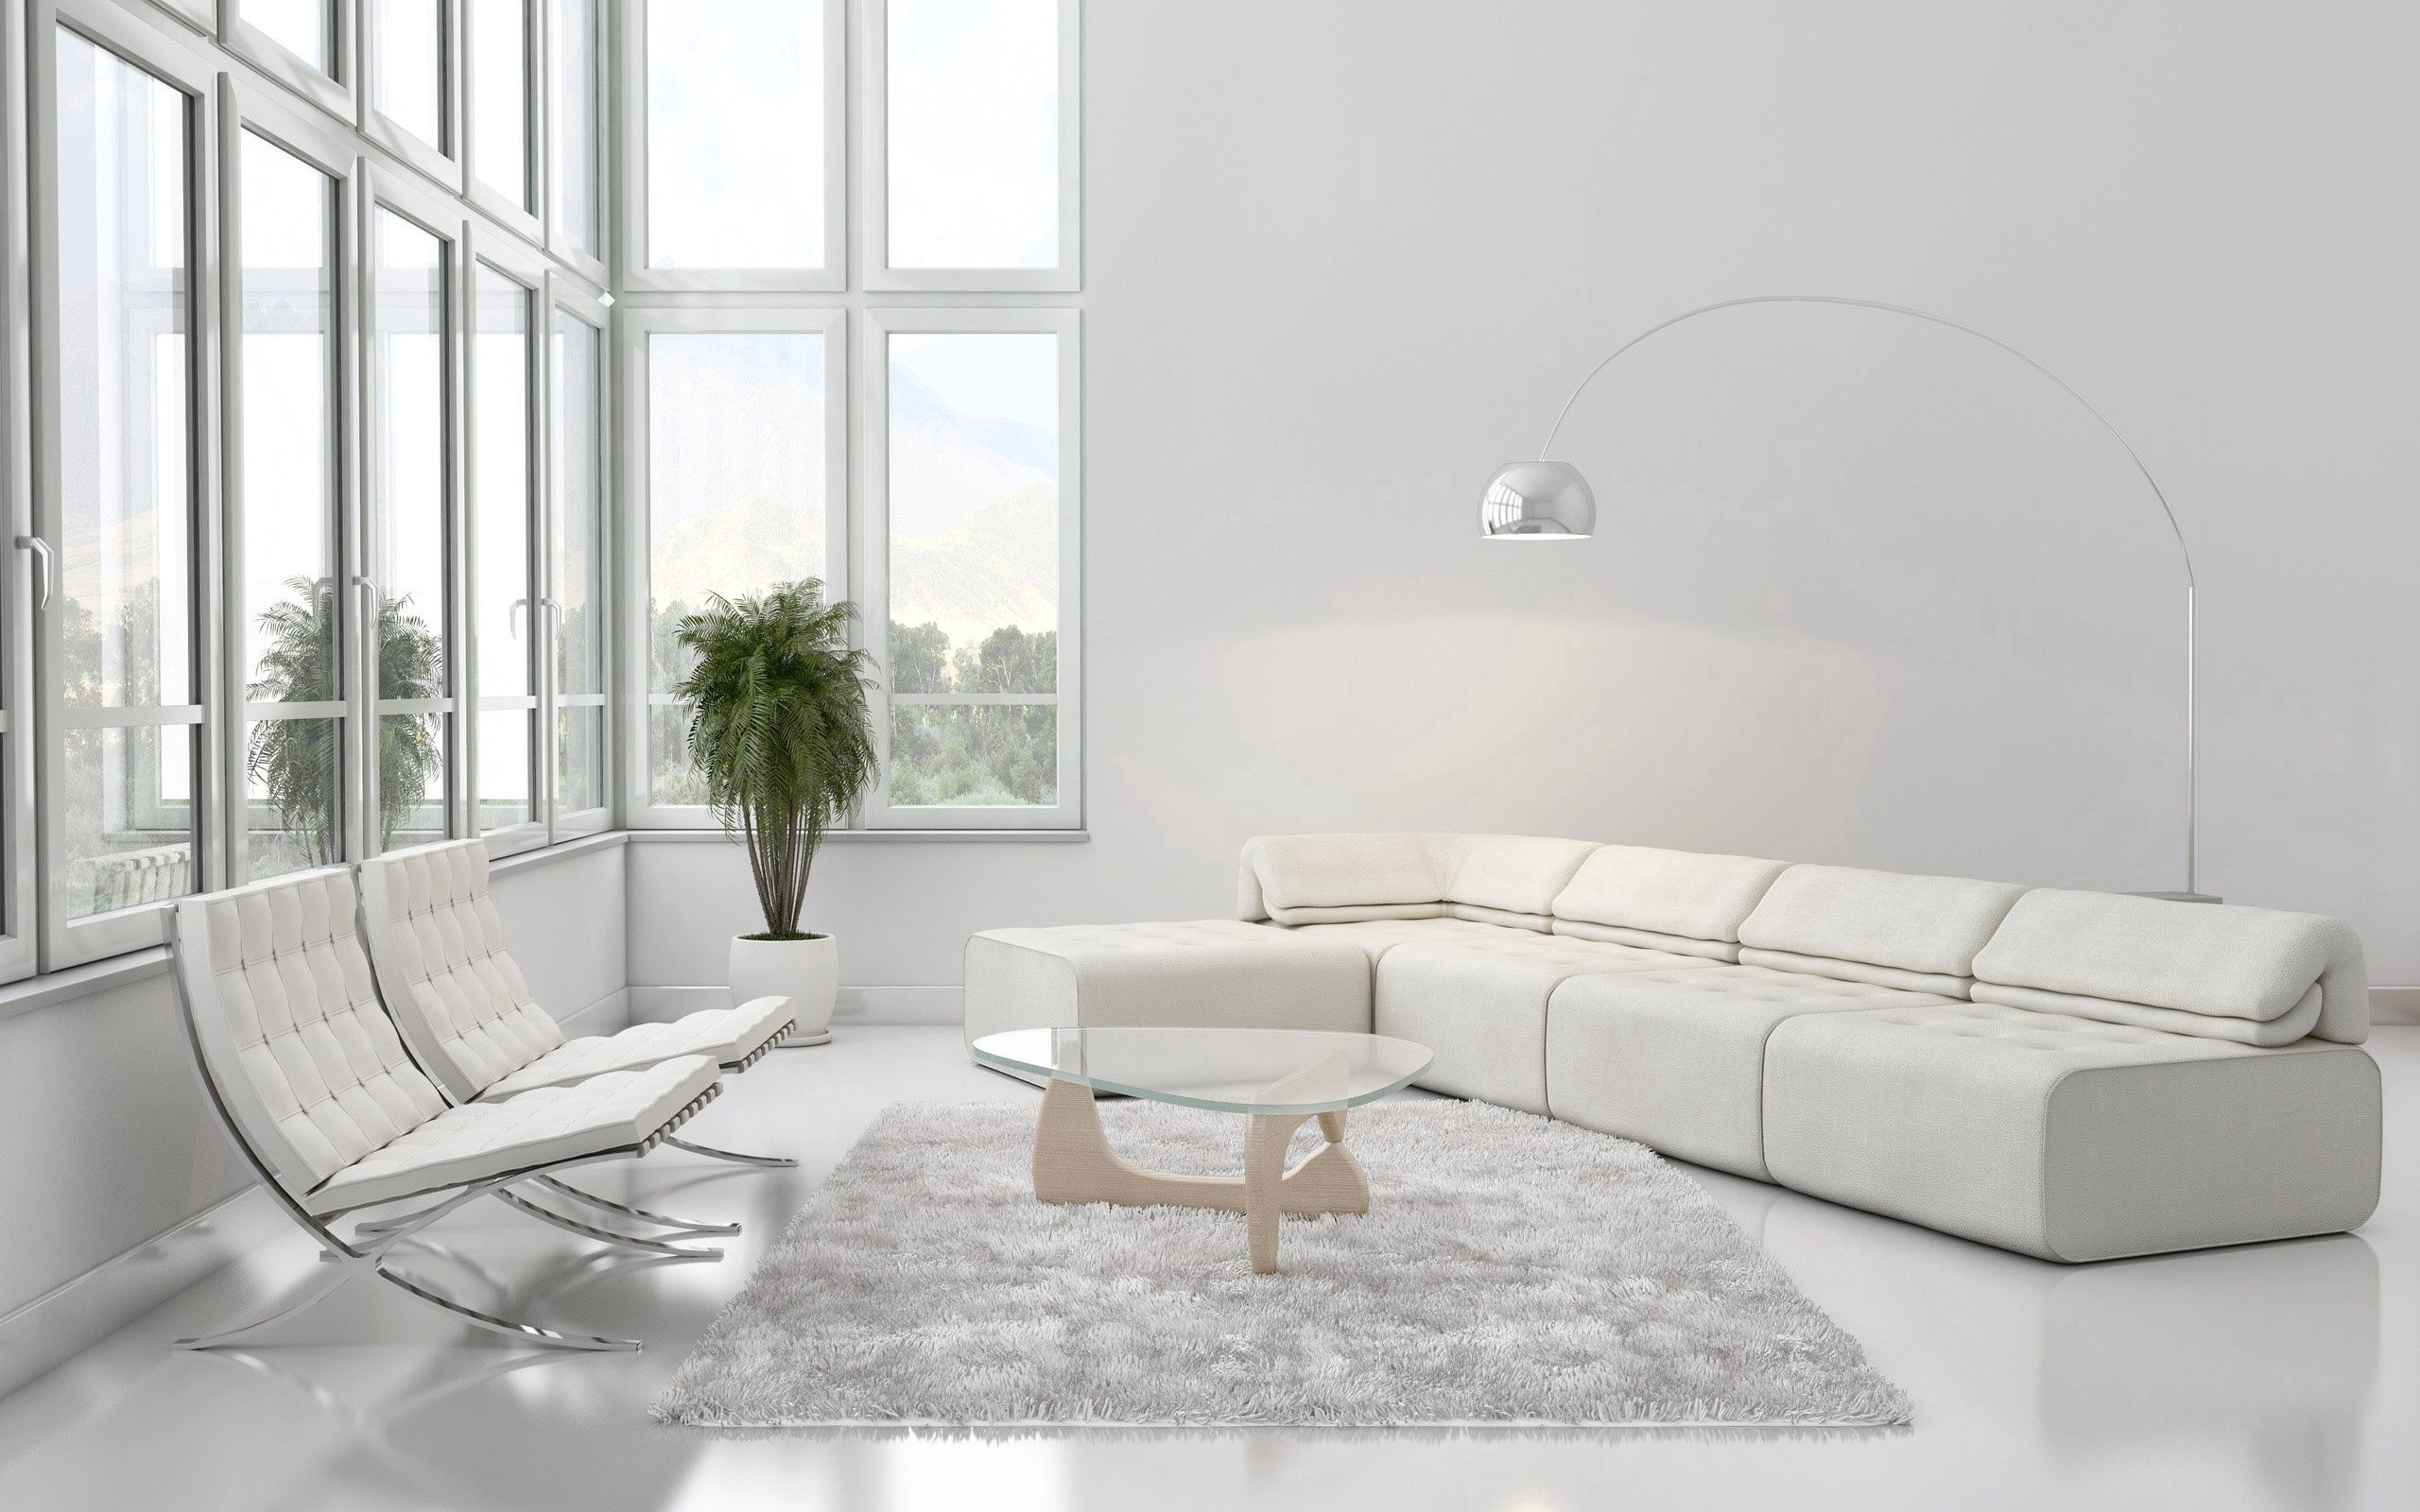 78350 download wallpaper Interior, Miscellanea, Miscellaneous, Style, Sofa, Furniture screensavers and pictures for free